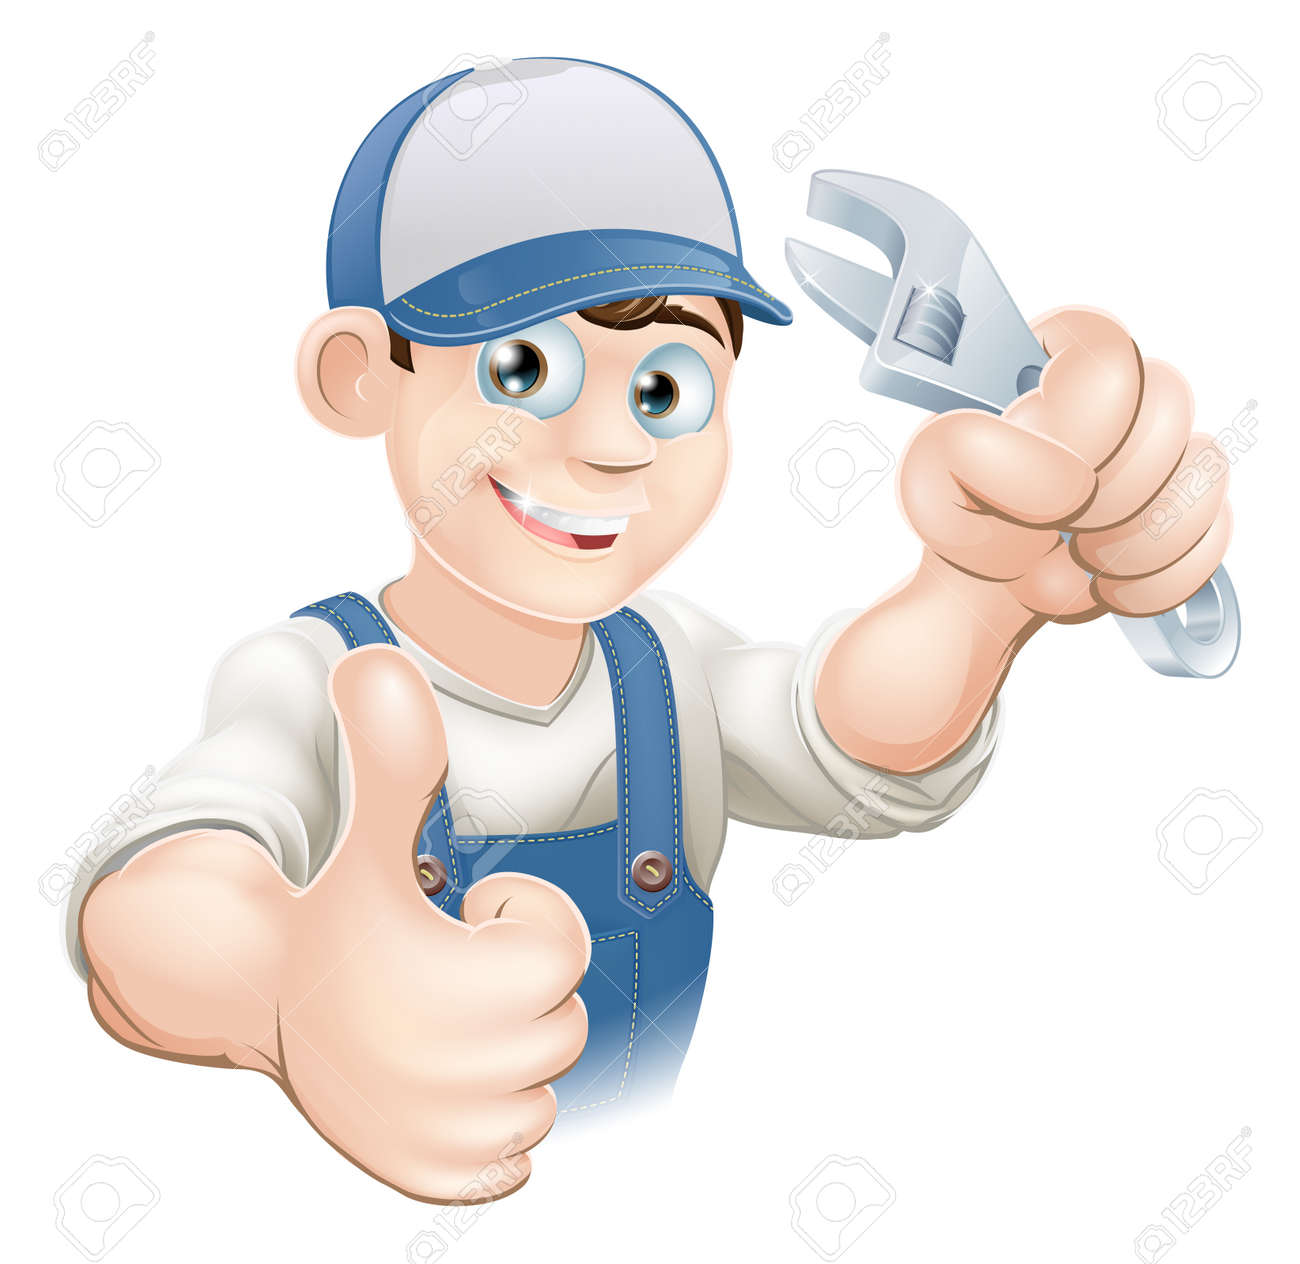 Graphic of a smiling plumber, mechanic or handyman in overalls holding a wrench and giving thumbs up Stock Vector - 14508940